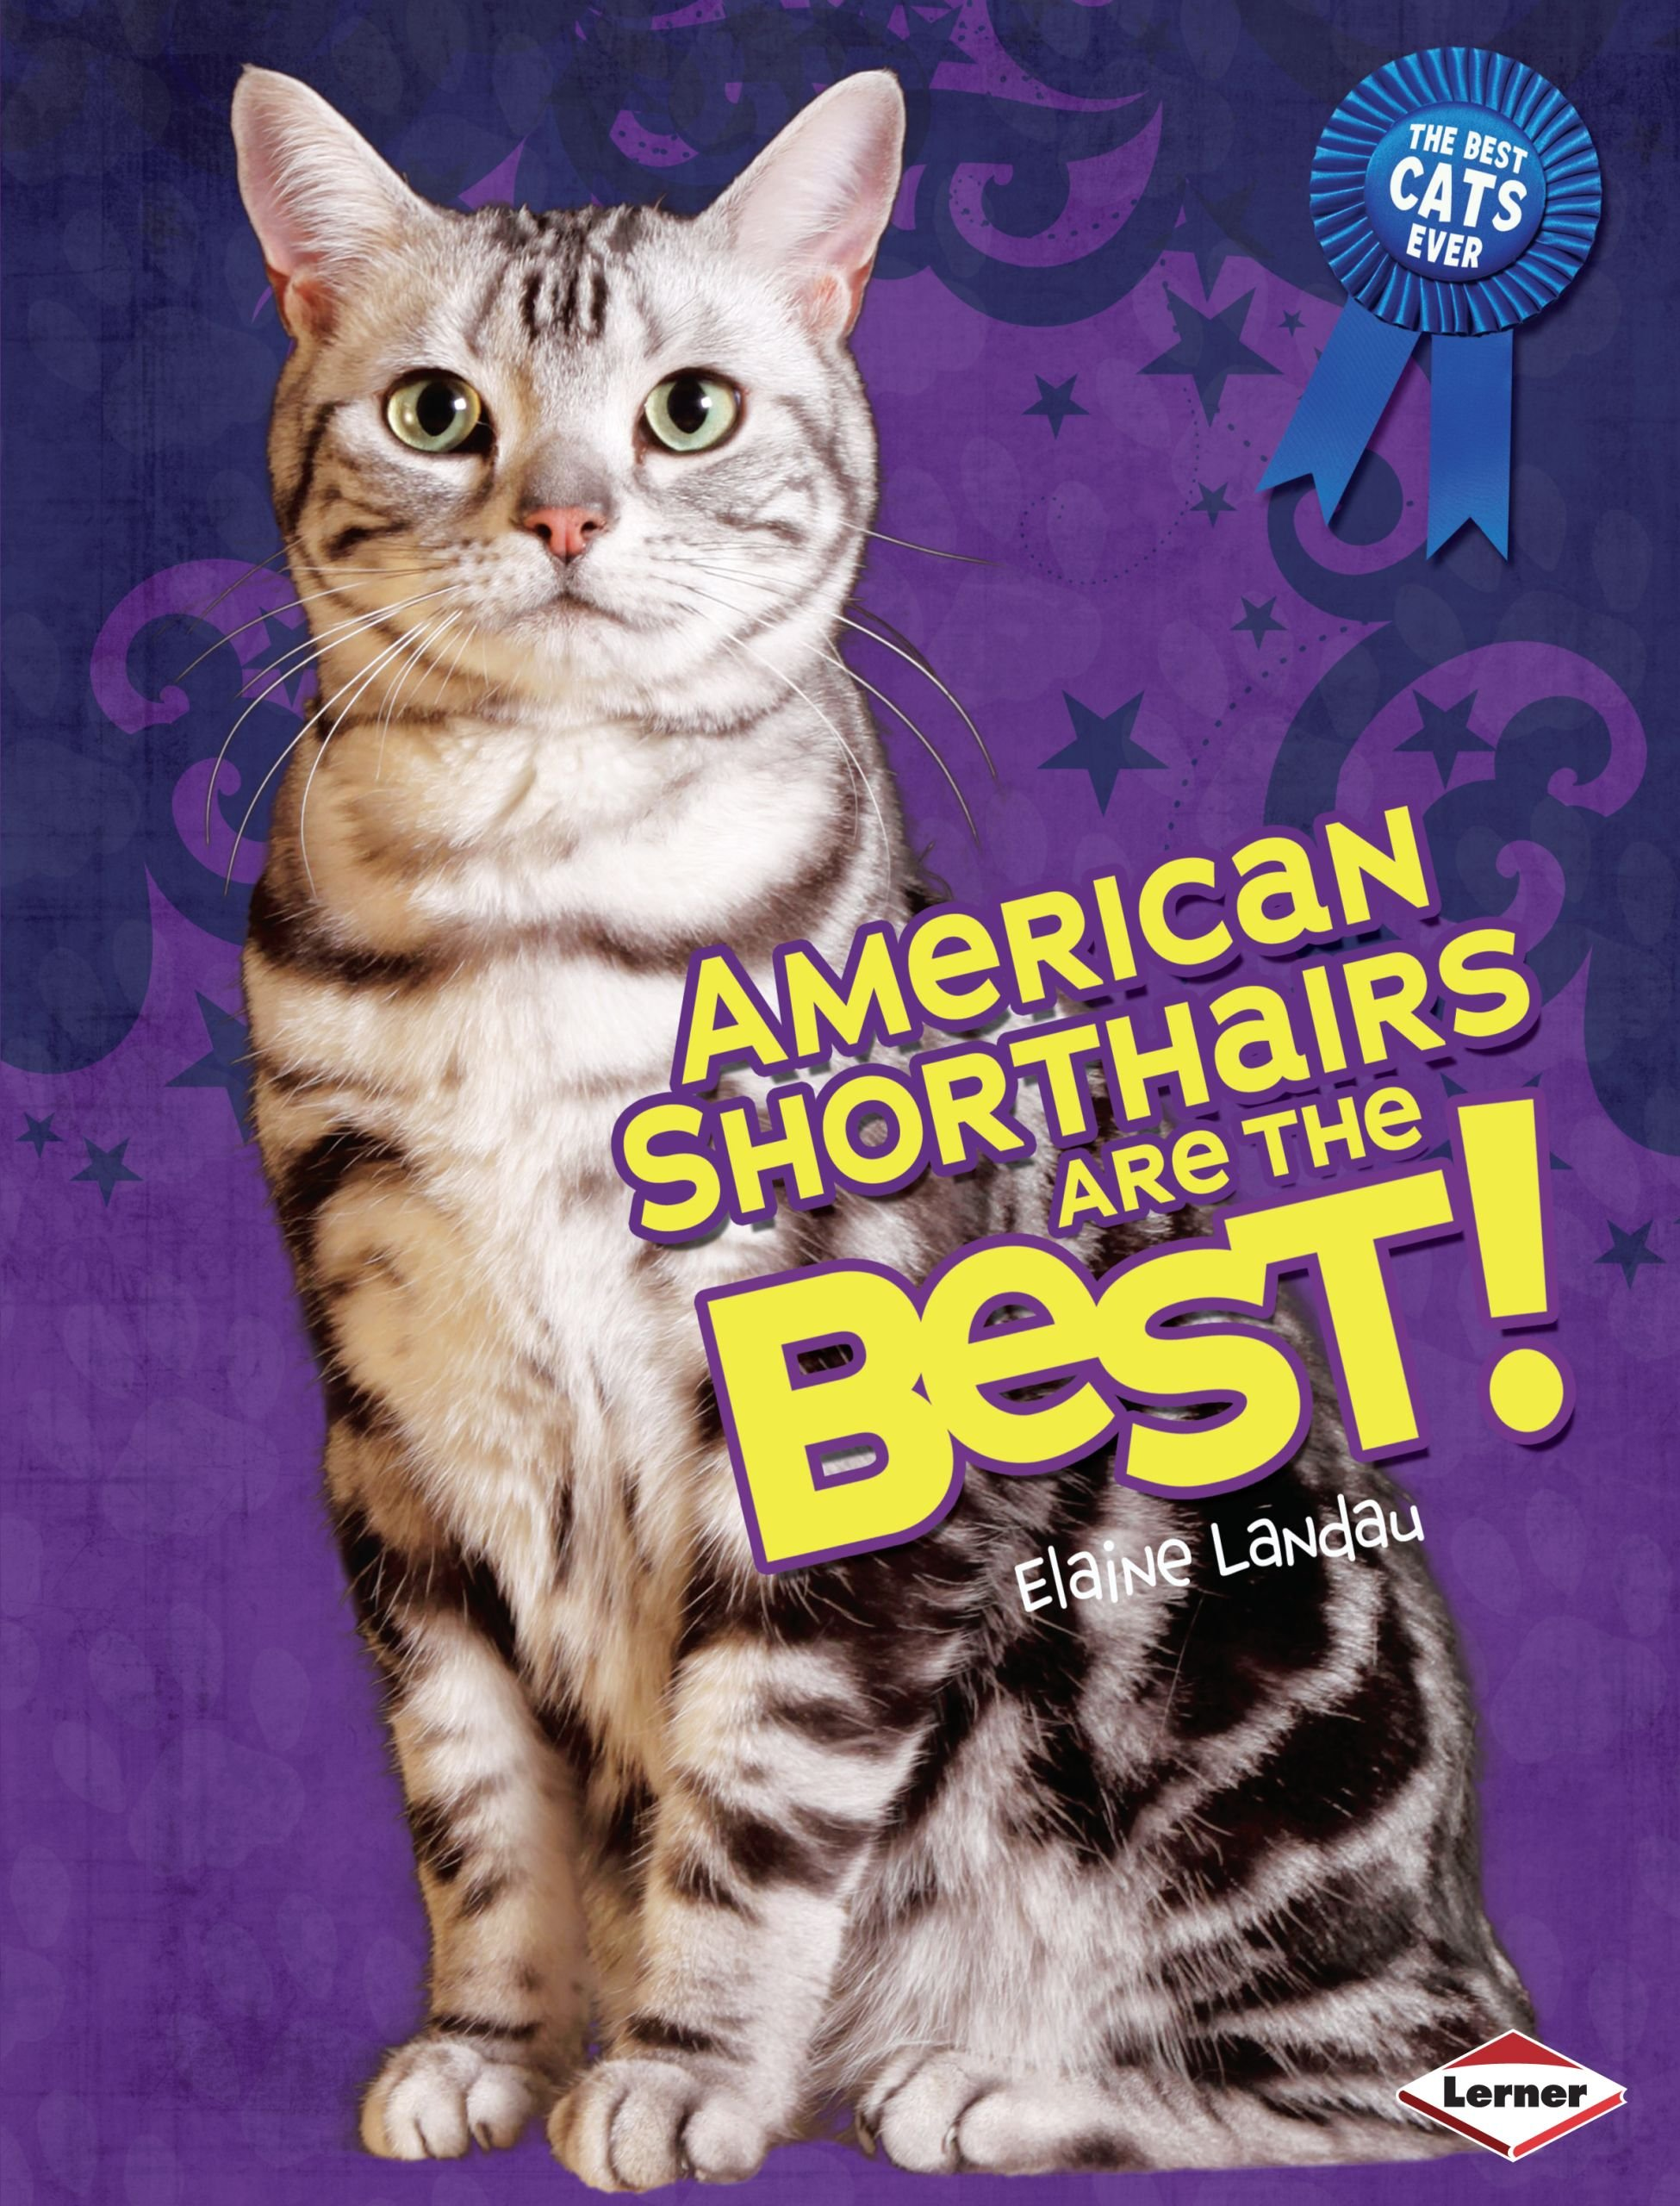 American Shorthairs Are the Best! (The Best Cats Ever)